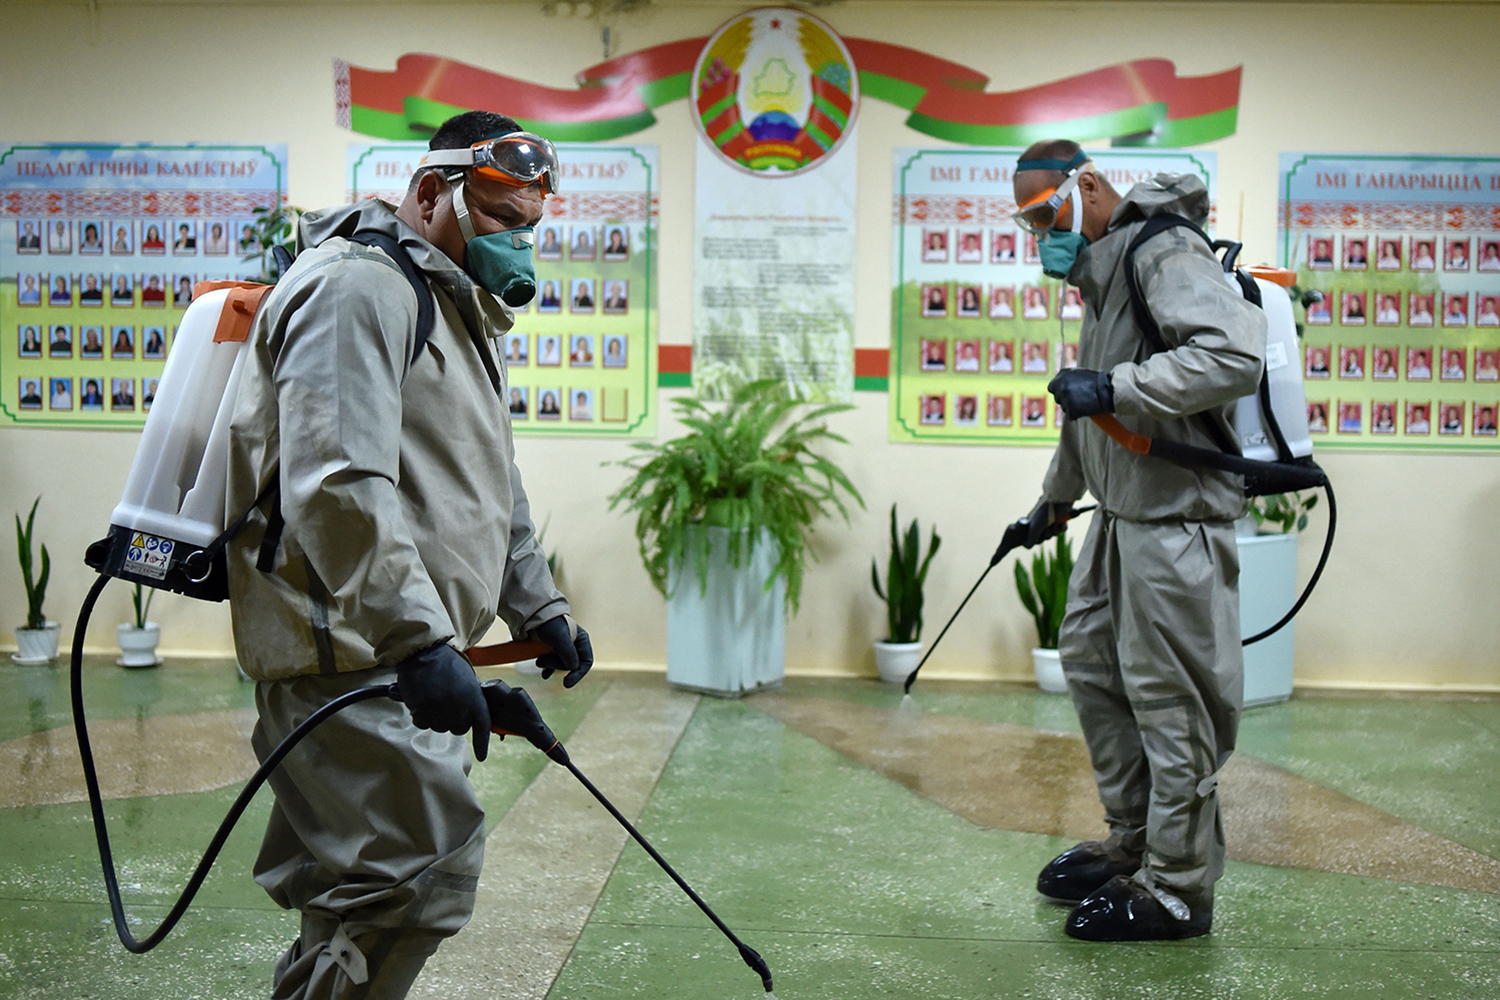 Belarus servicemen wearing protective gear disinfect a school in the village of Mikhanavichy outside Minsk on May 3.